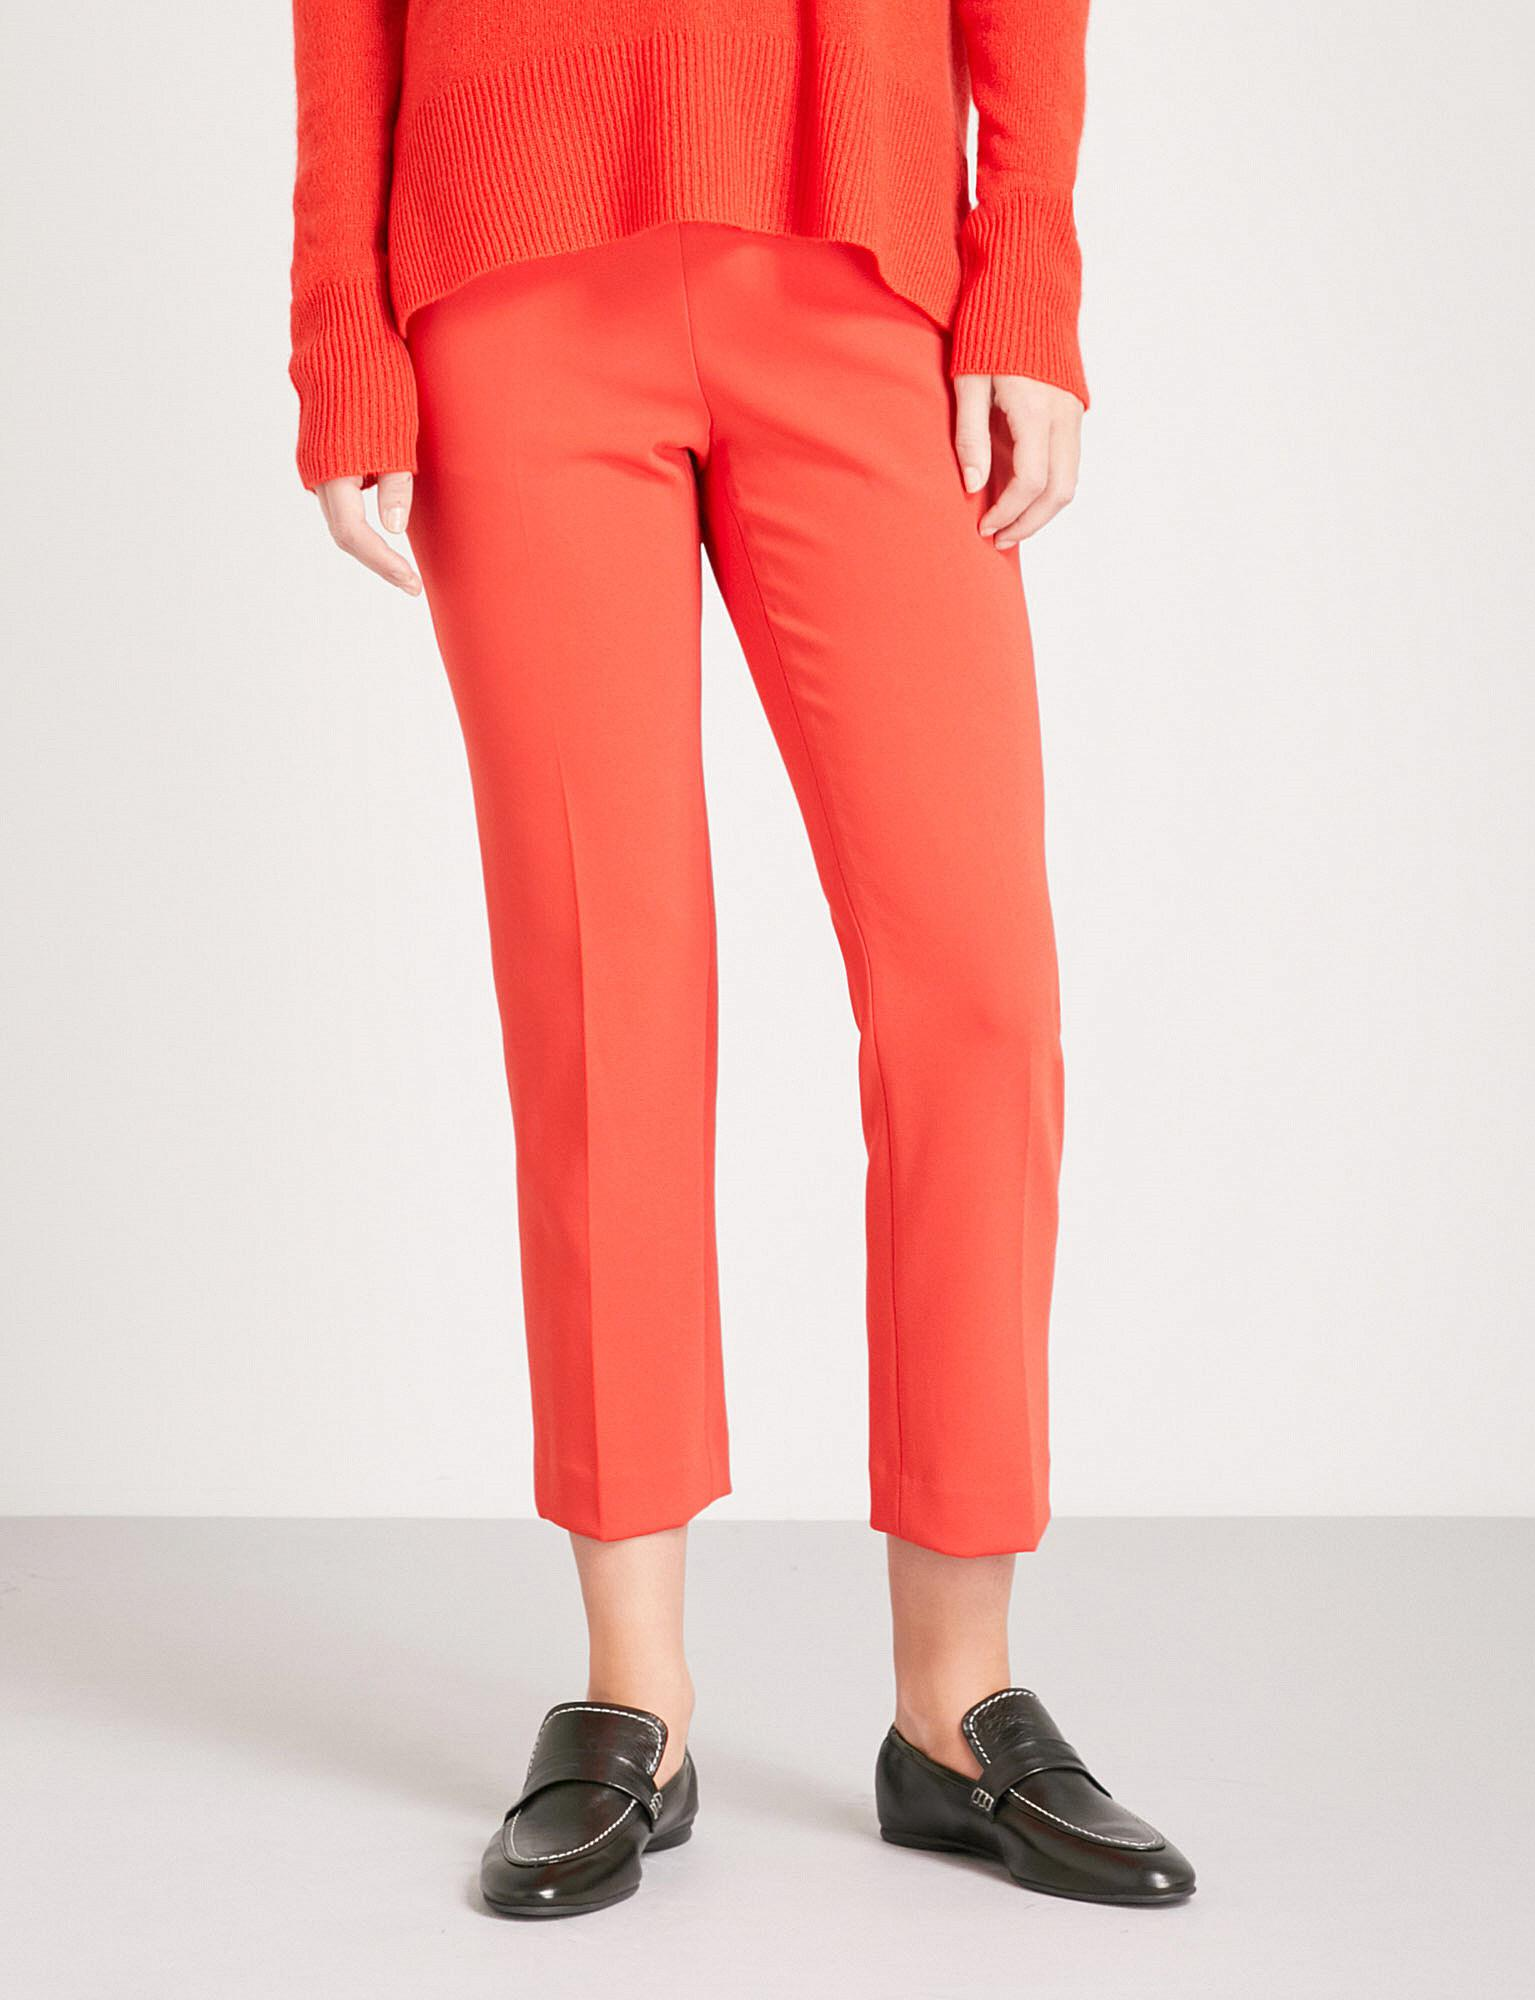 Cheap Sale Extremely cropped slim trousers - Red Theory Buy Cheap Low Price Fee Shipping Professional Cheap Price Pay With Visa For Sale 0Rqy7zaTx